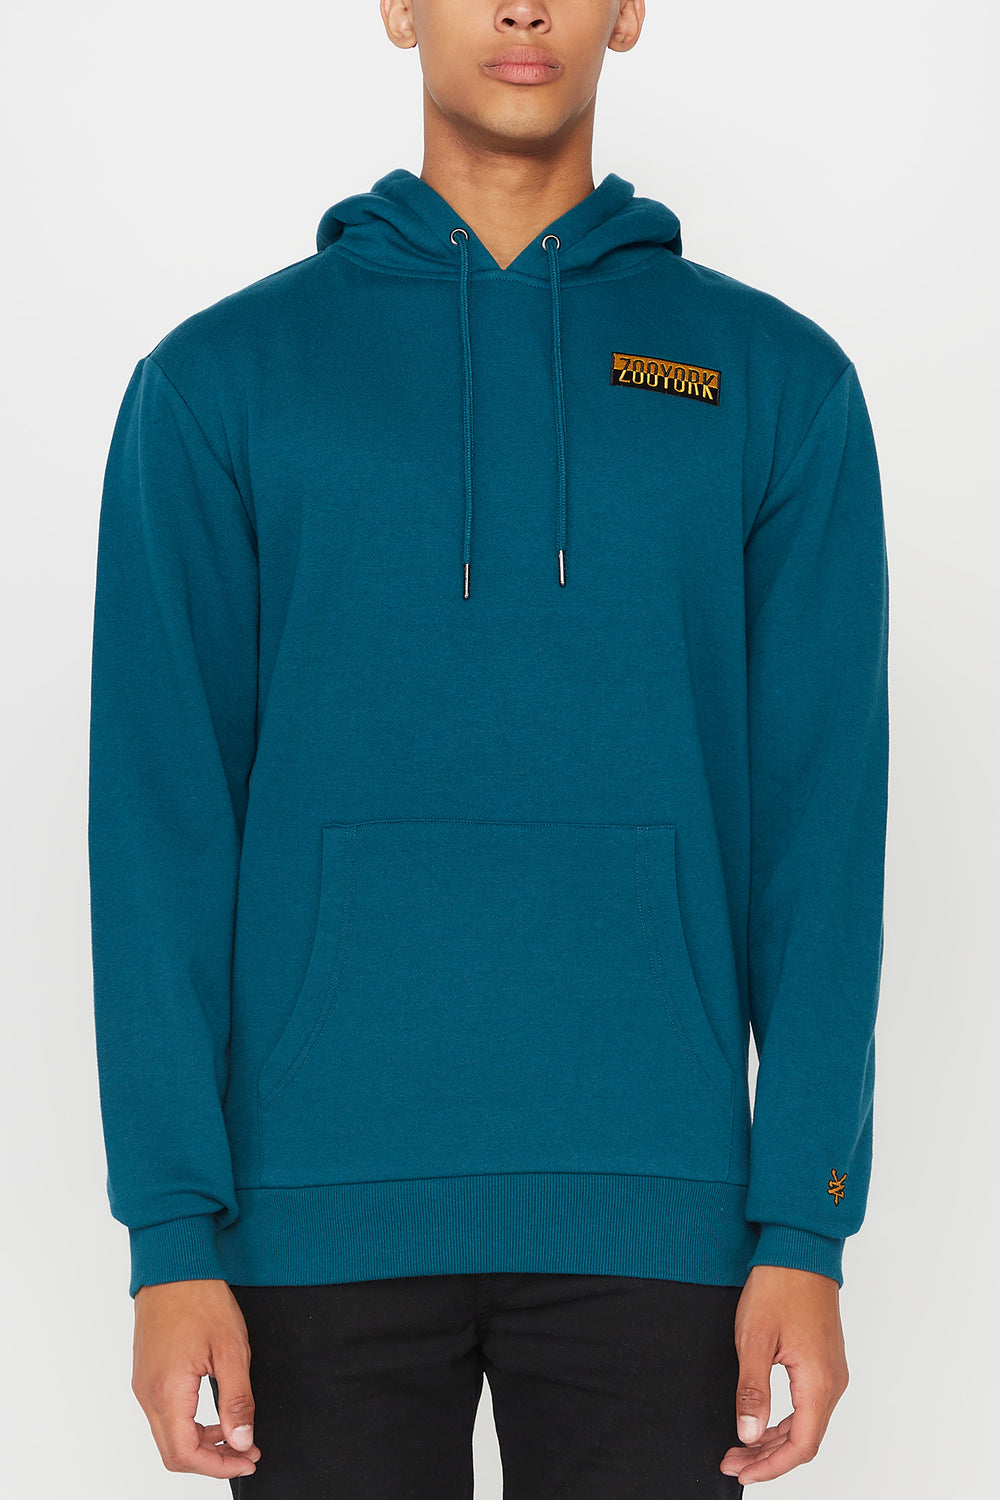 Zoo York Mens Two Tone Box Logo Hoodie Teal